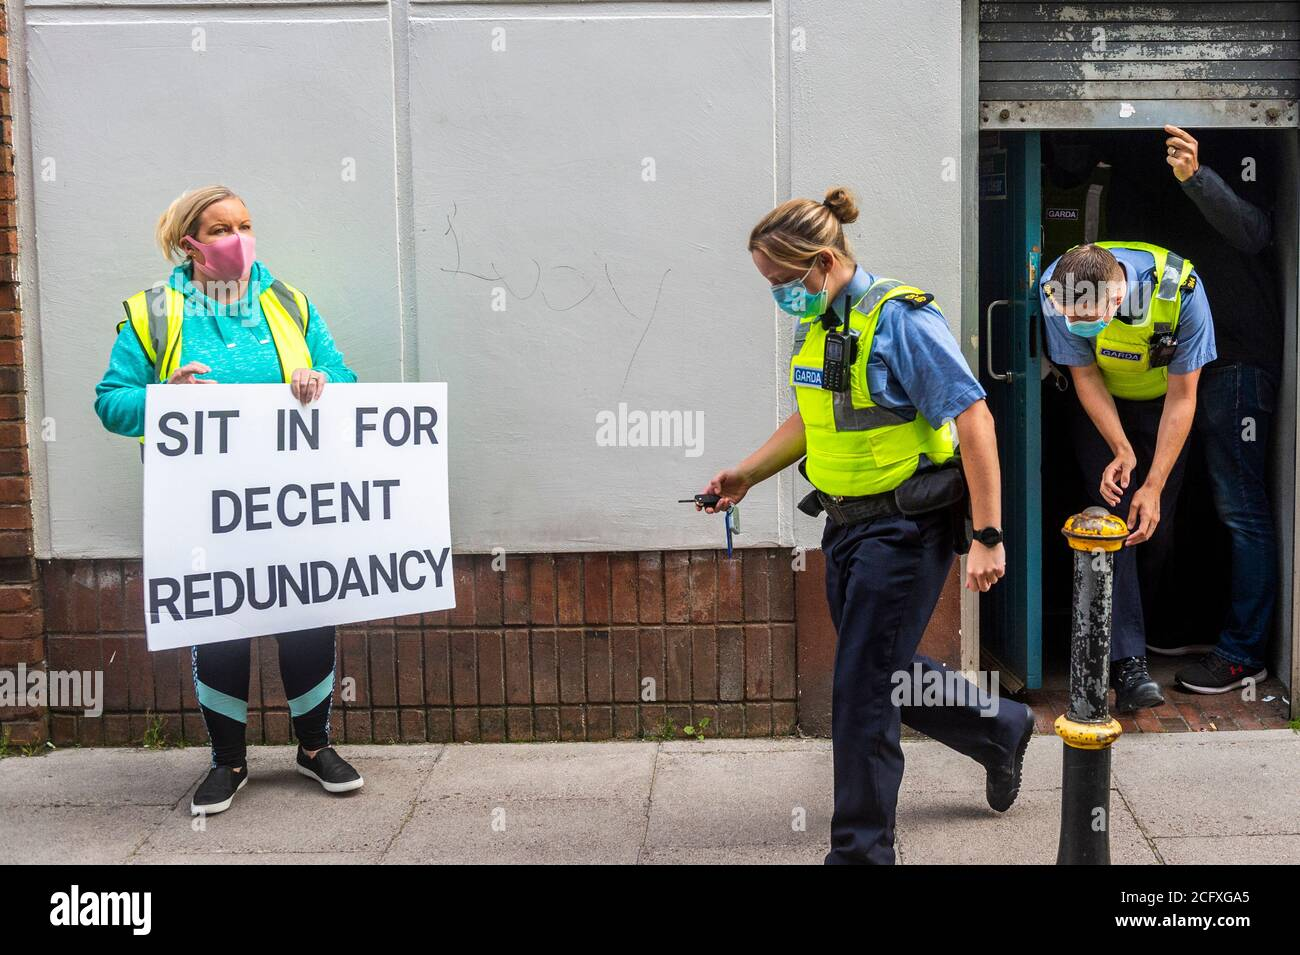 cork-ireland-8th-sep-2020-ex-debenhams-workers-entered-the-closed-debenhams-stores-in-patrick-street-cork-and-henry-street-dublin-this-morning-to-escalate-their-action-the-sit-in-comes-after-the-workers-claim-the-1million-redundancy-offer-made-to-them-is-derisory-eight-ex-workers-are-in-the-cork-store-five-from-cork-two-from-tralee-and-one-from-thr-mahon-point-store-the-protestors-have-food-and-are-willing-to-sit-it-out-for-as-long-as-it-takes-for-them-to-receive-a-better-offer-gardai-leave-after-talkking-to-the-protestors-no-arrests-were-made-credit-ag-newsalamy-live-news-2CFXGA5.jpg